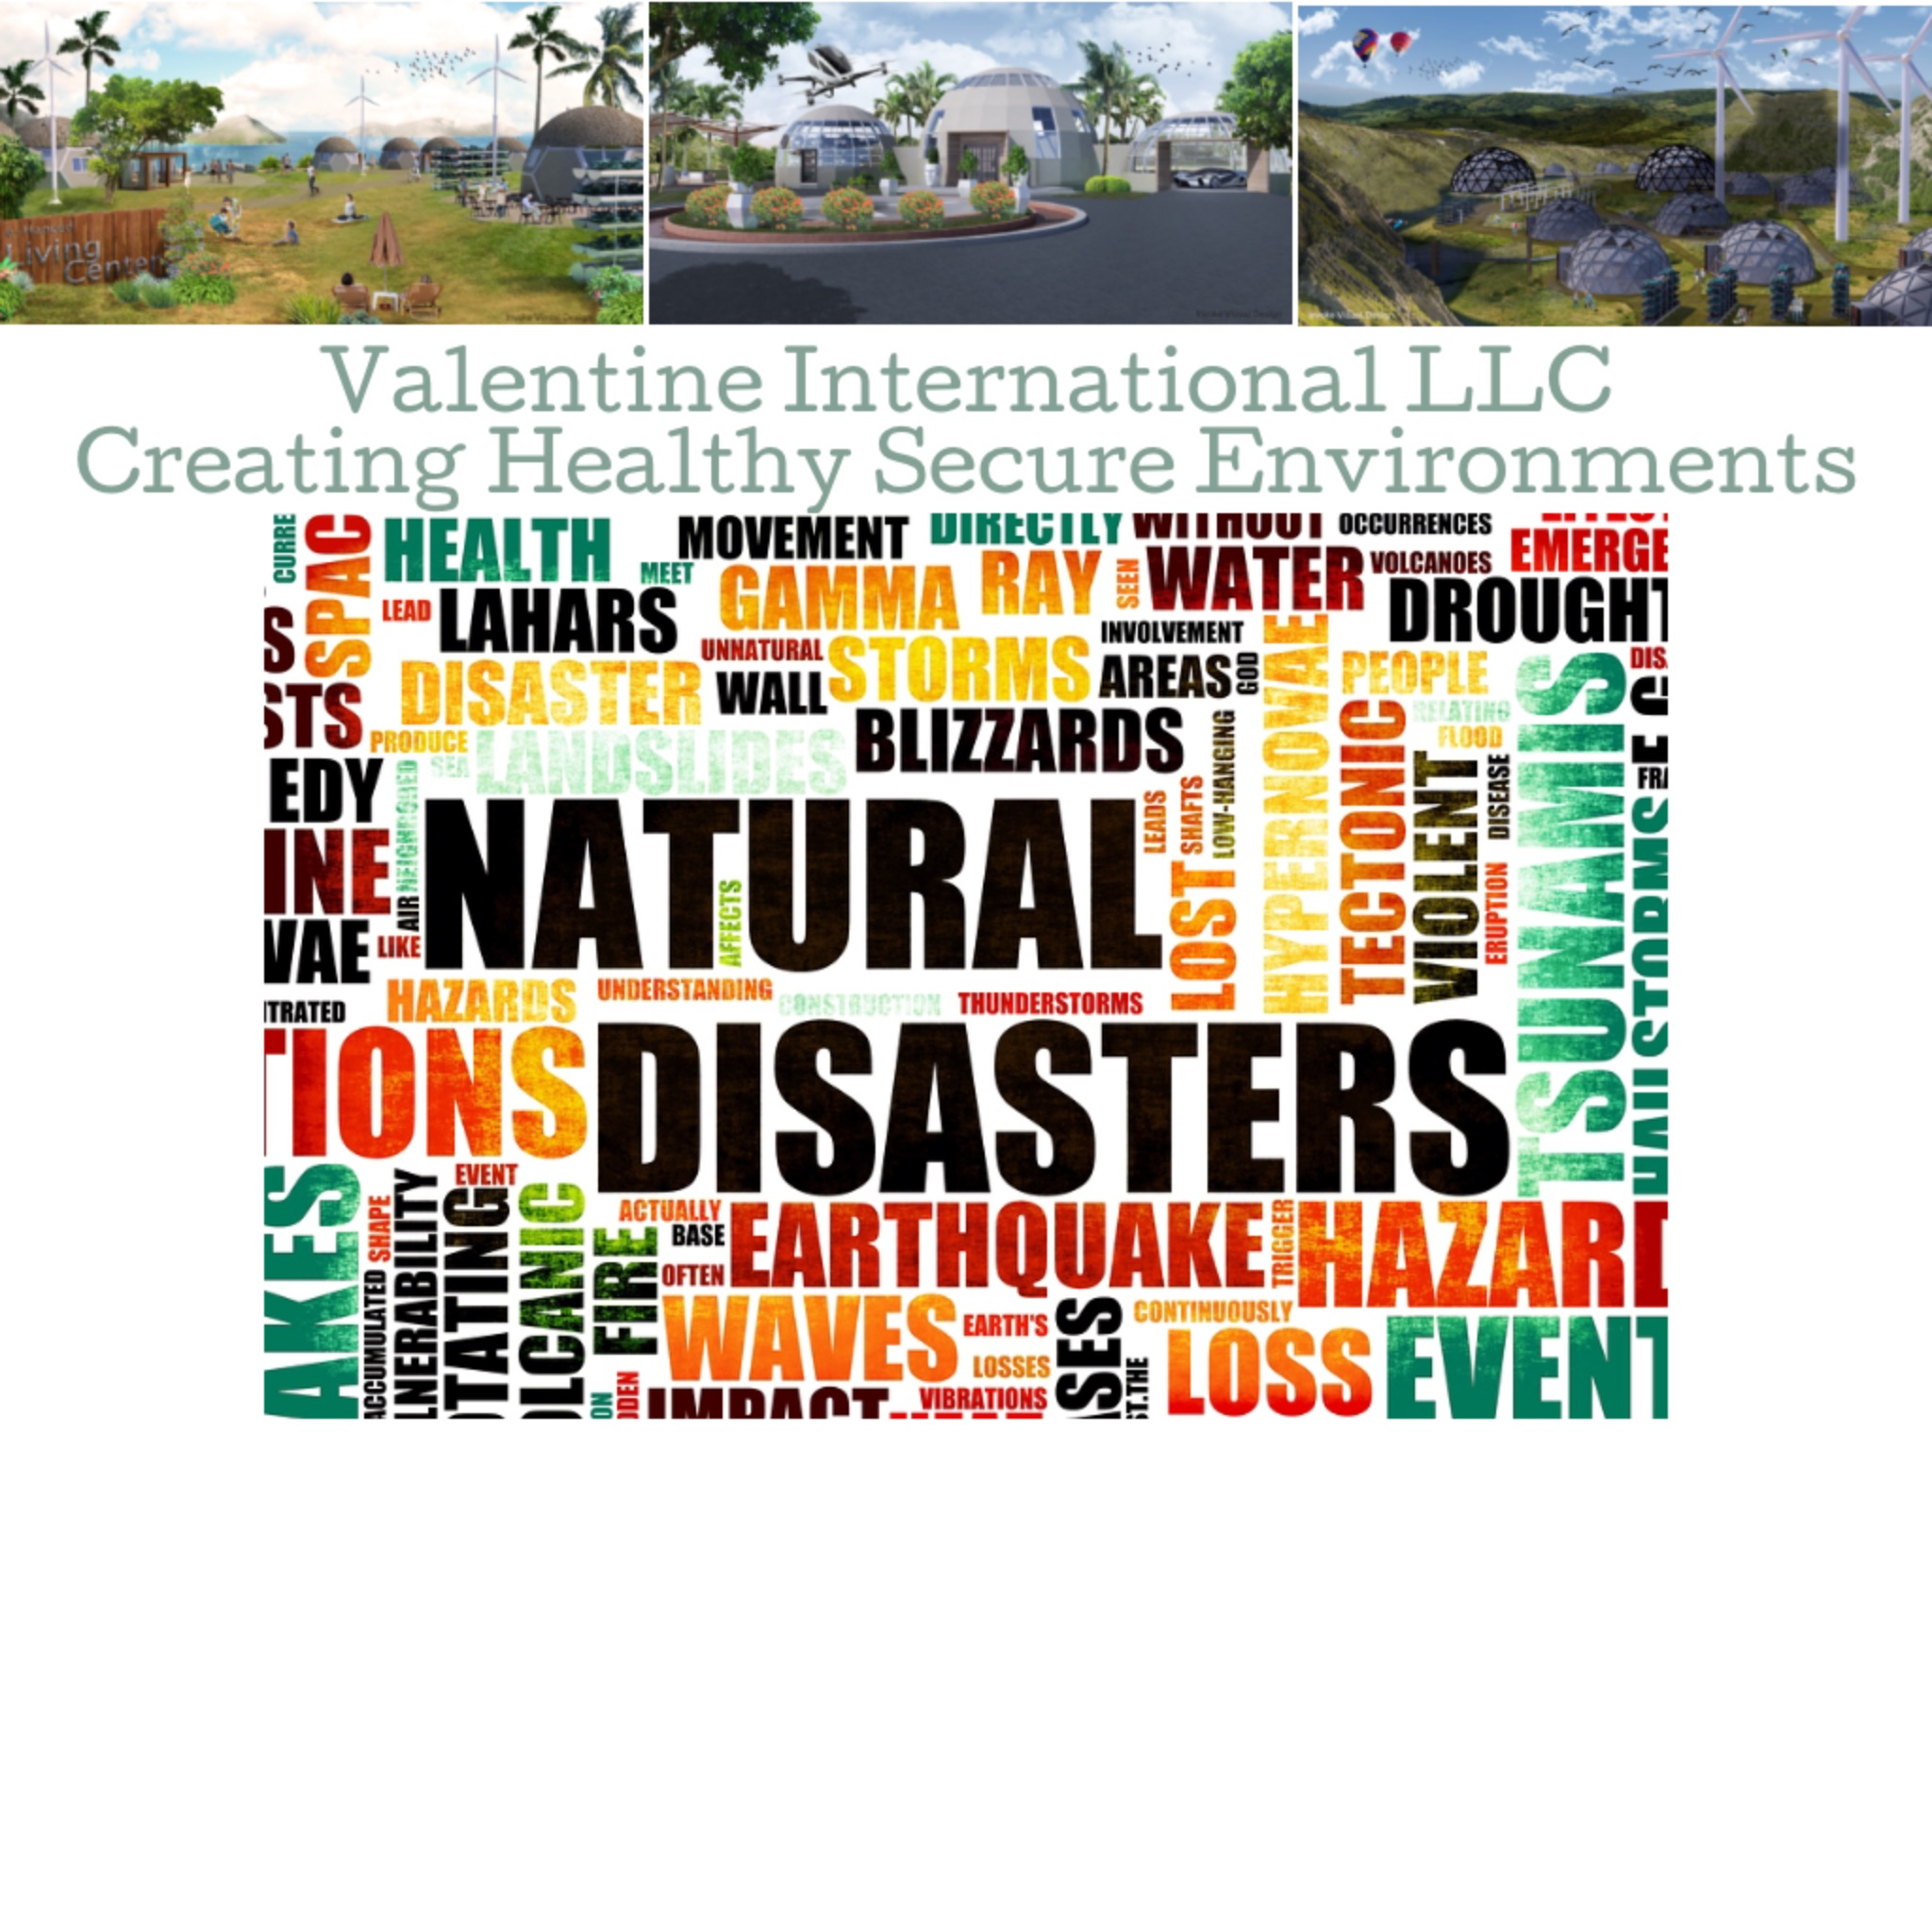 Relocating Mainland USA Clients to A SAFE Area - St Croix US Virgin Islands